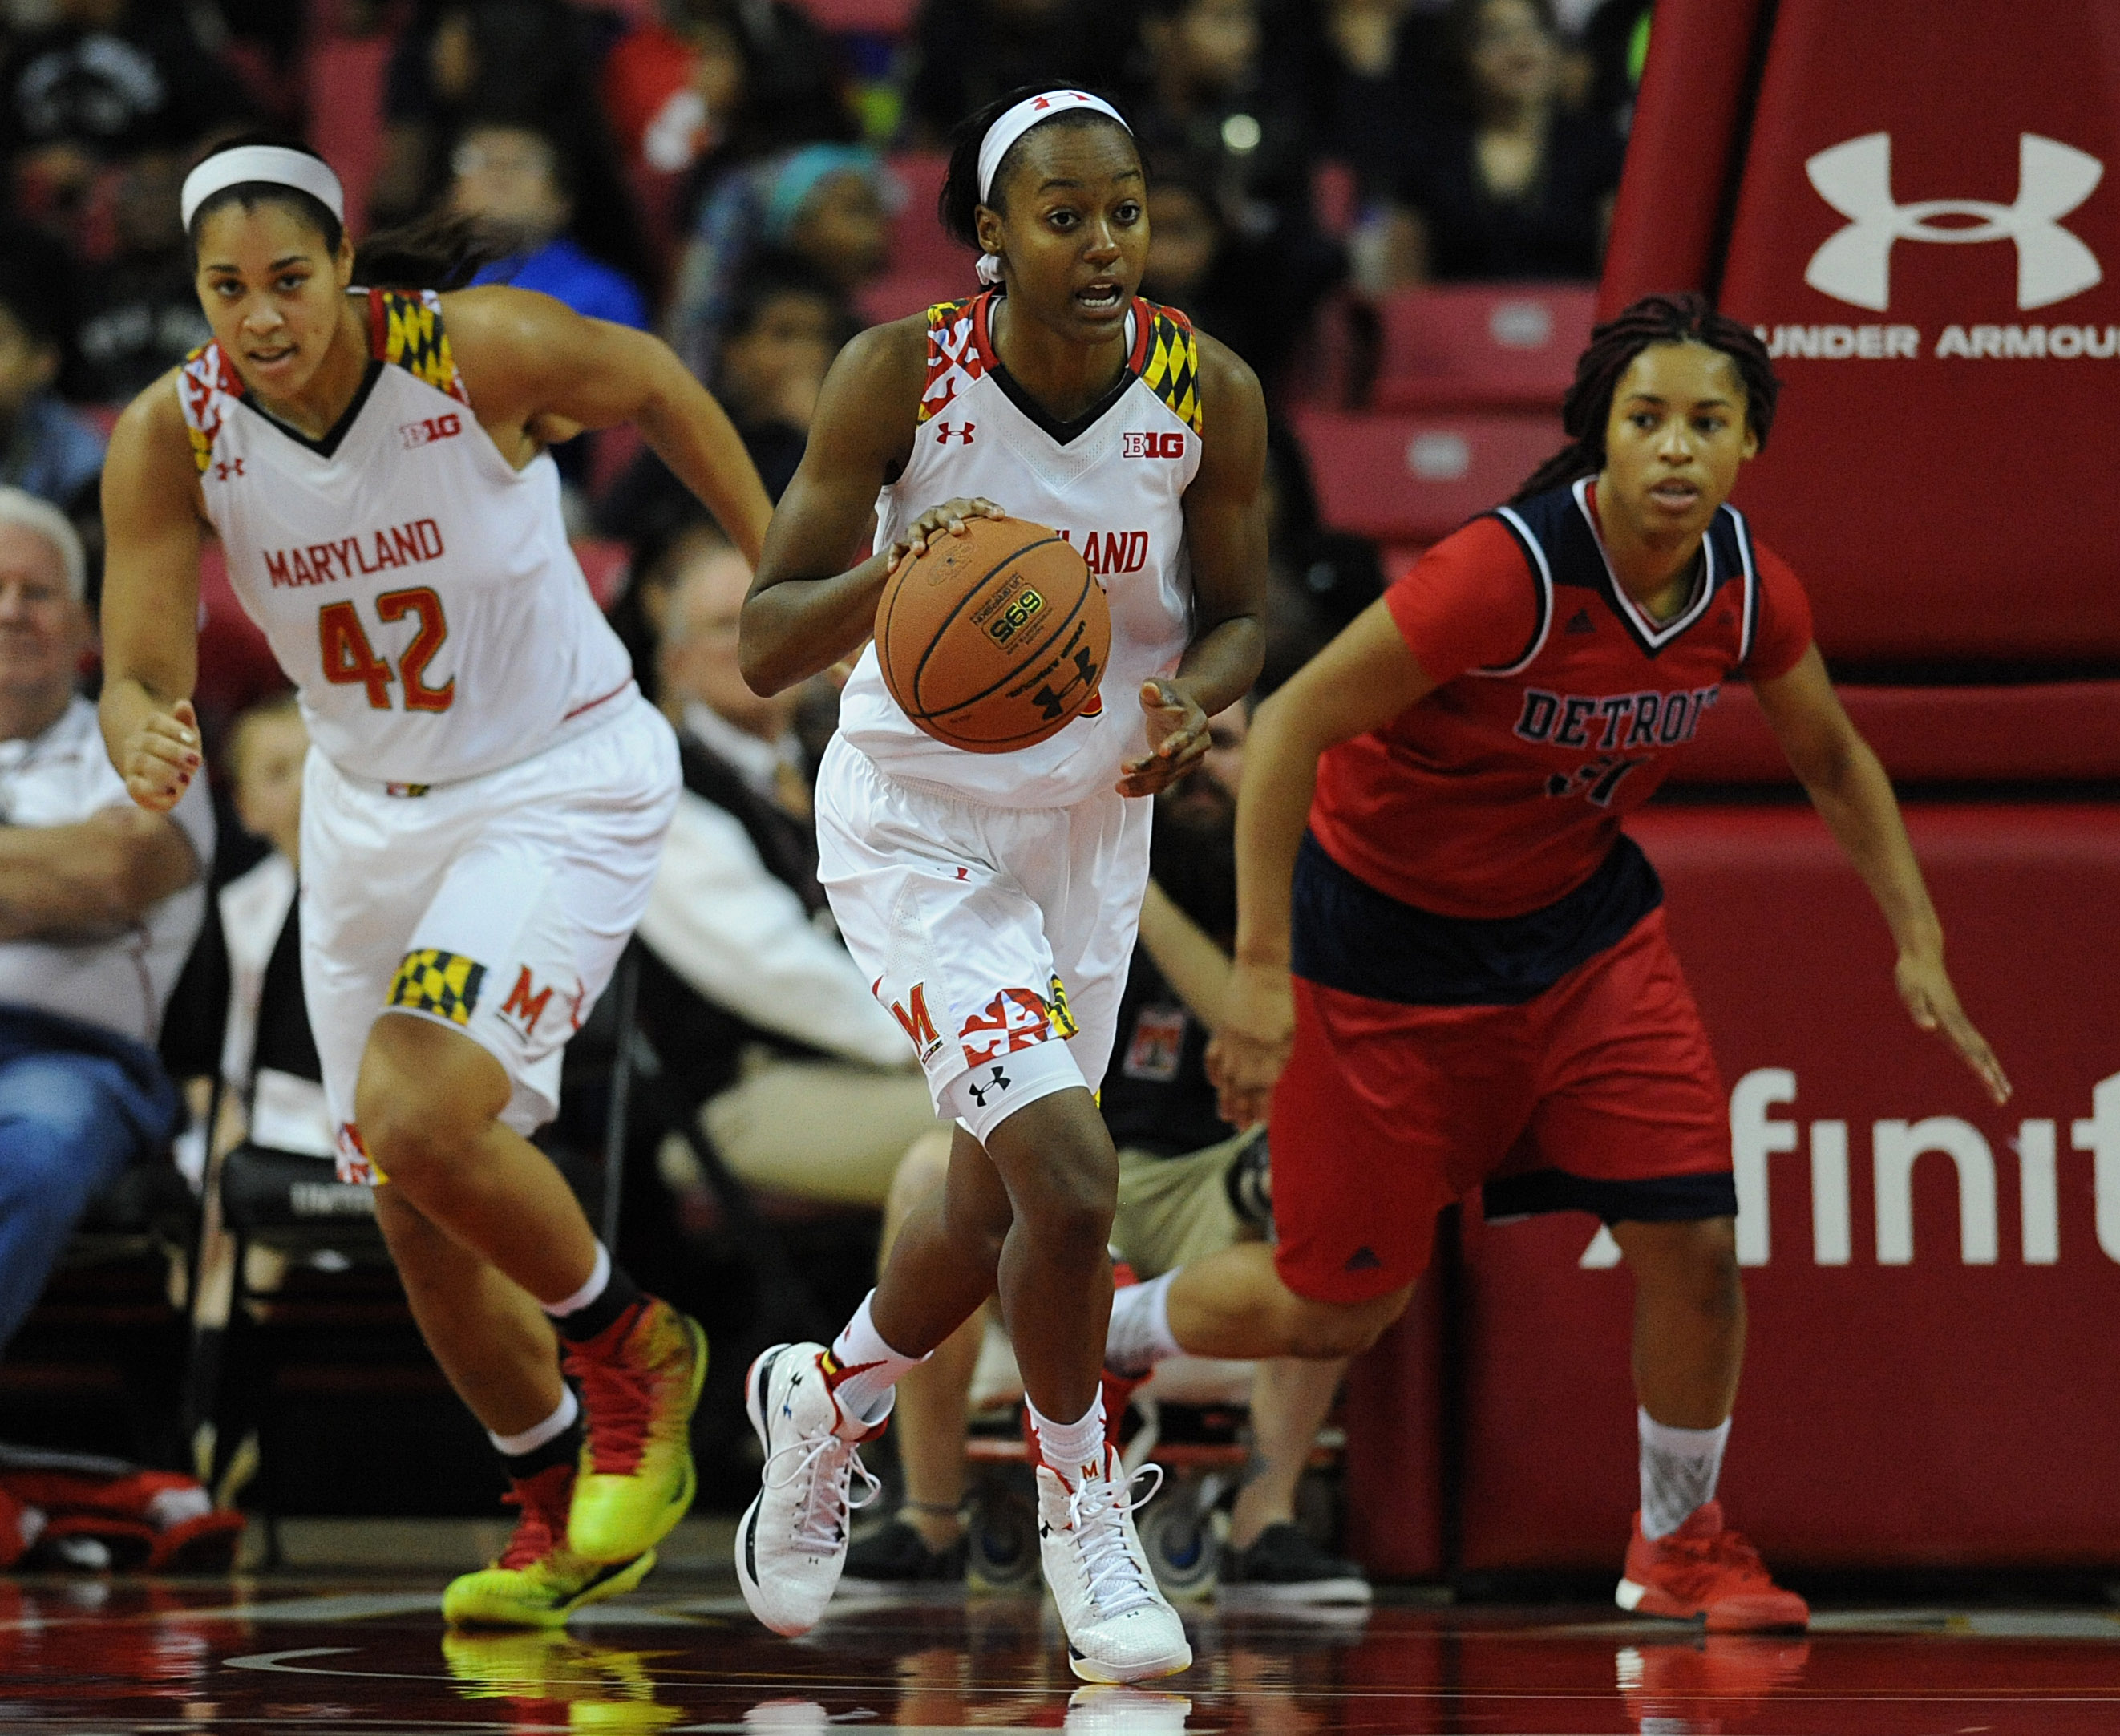 Maryland's Shatori Walker-Kimbrough, center, runs the ball against Detroit in the second half of a NCAA college basketball game, Friday, Nov. 20, 2015 in College Park, Md.(AP Photo/Gail Burton)